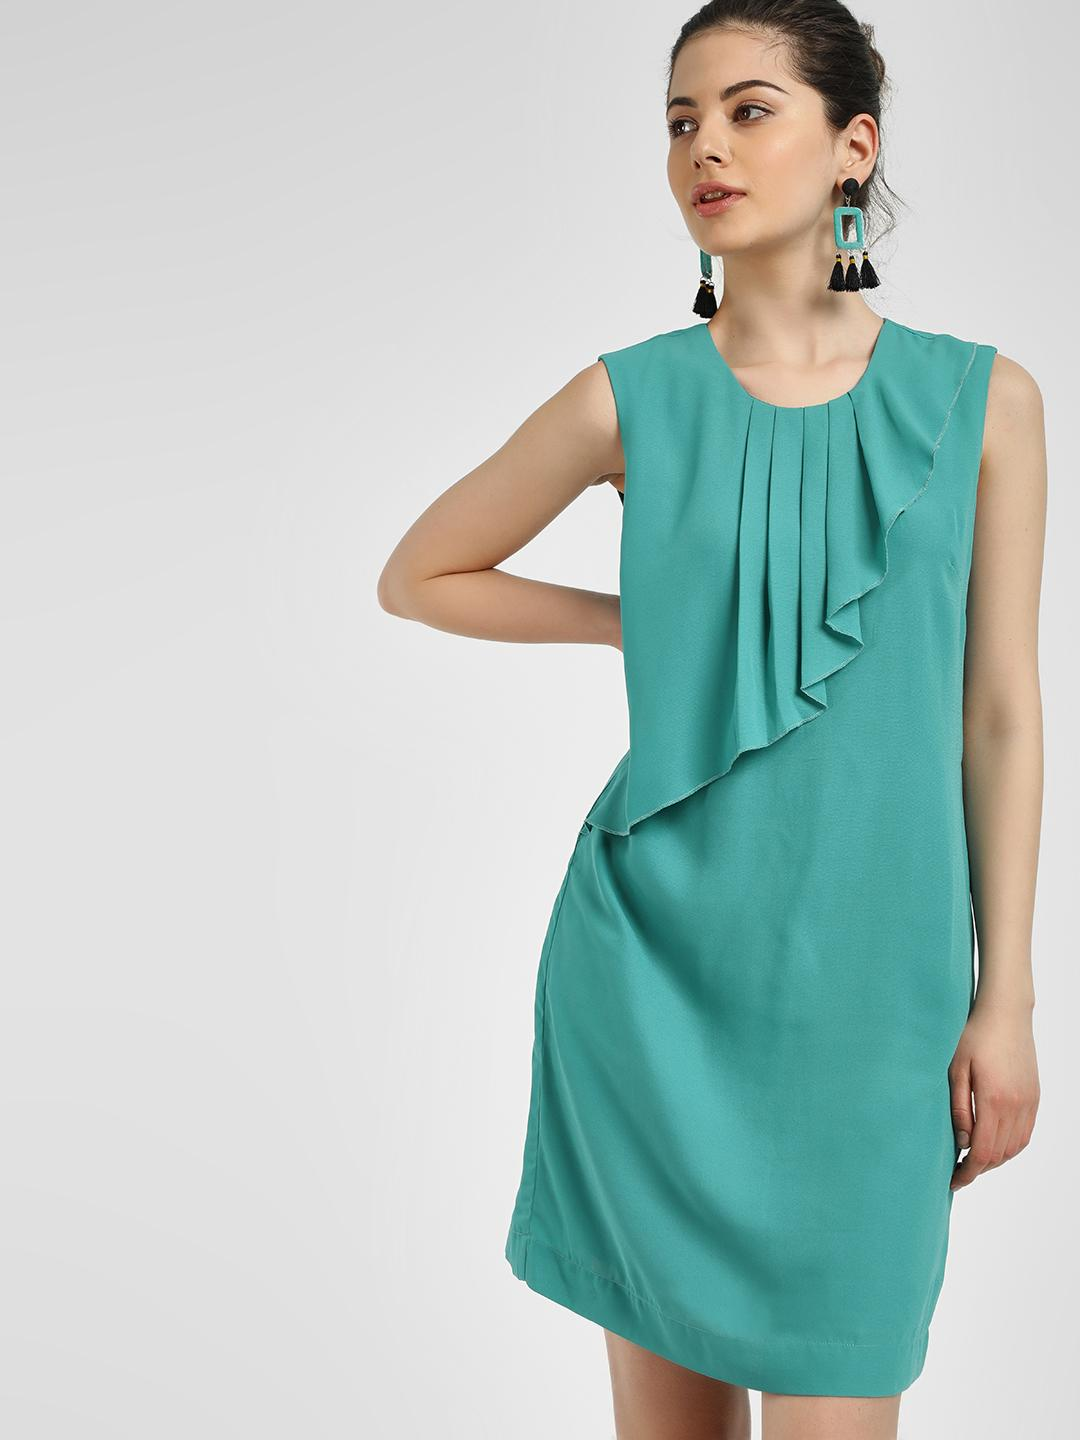 PostFold Teal Pleated Sleeveless Shift Dress 1